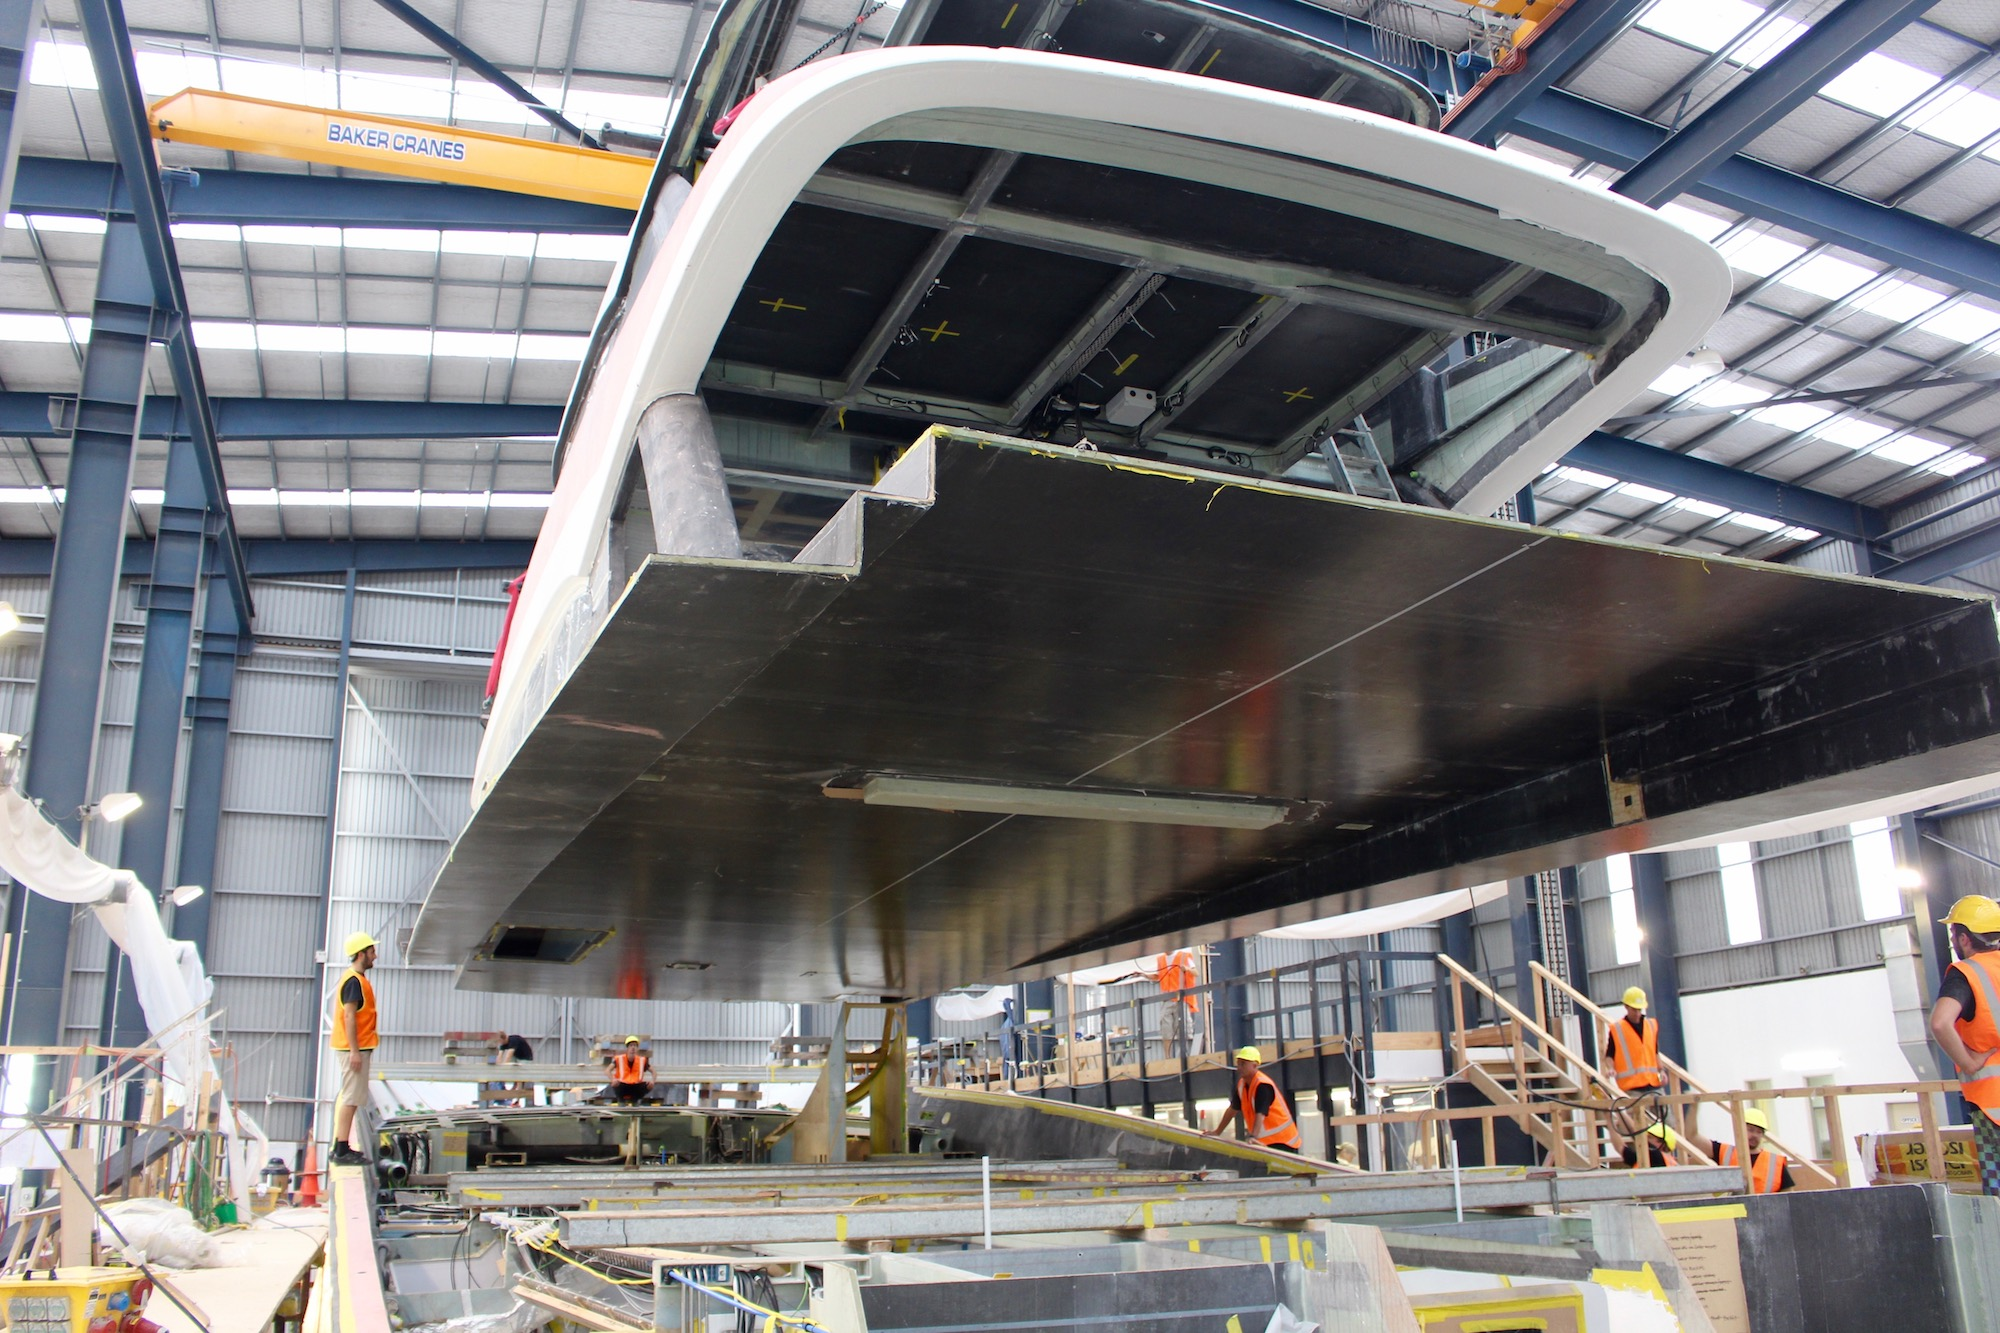 Yachting Developments New Zealand - motor yacht Hull1015 - to be launched in 2017